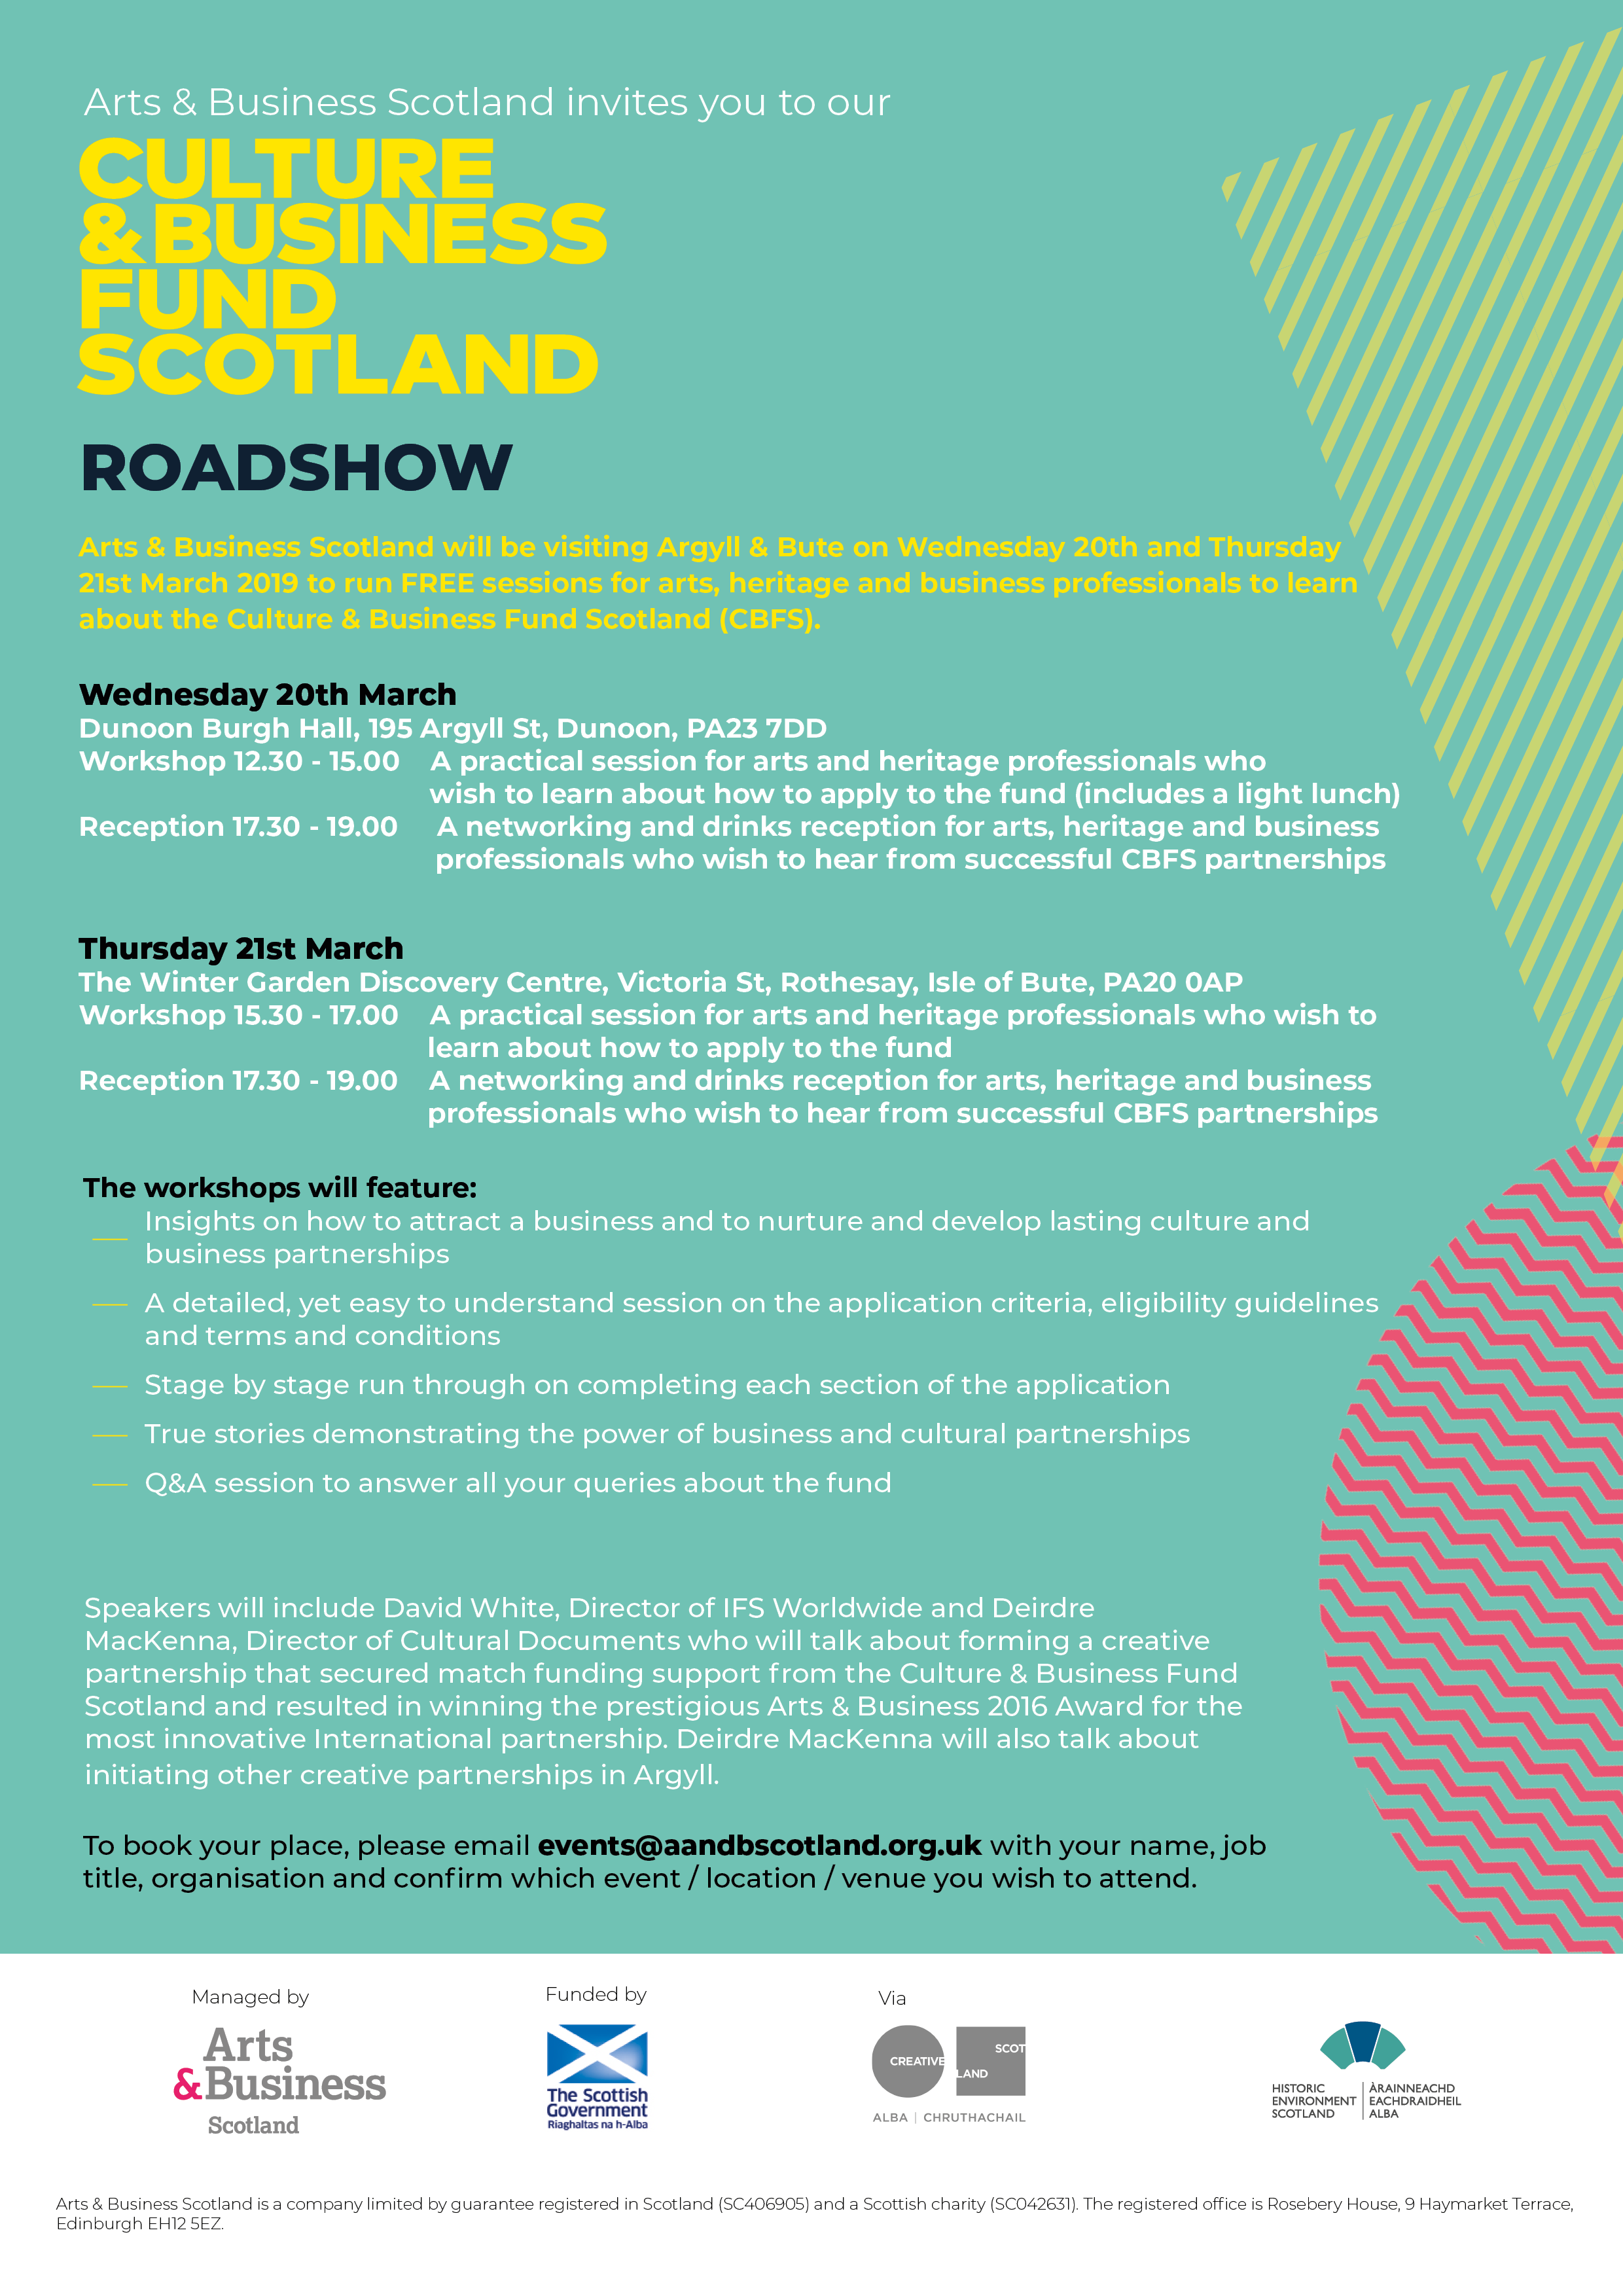 Culture & Business Fund Scotland - Rothesay & Dunoon Roadshow